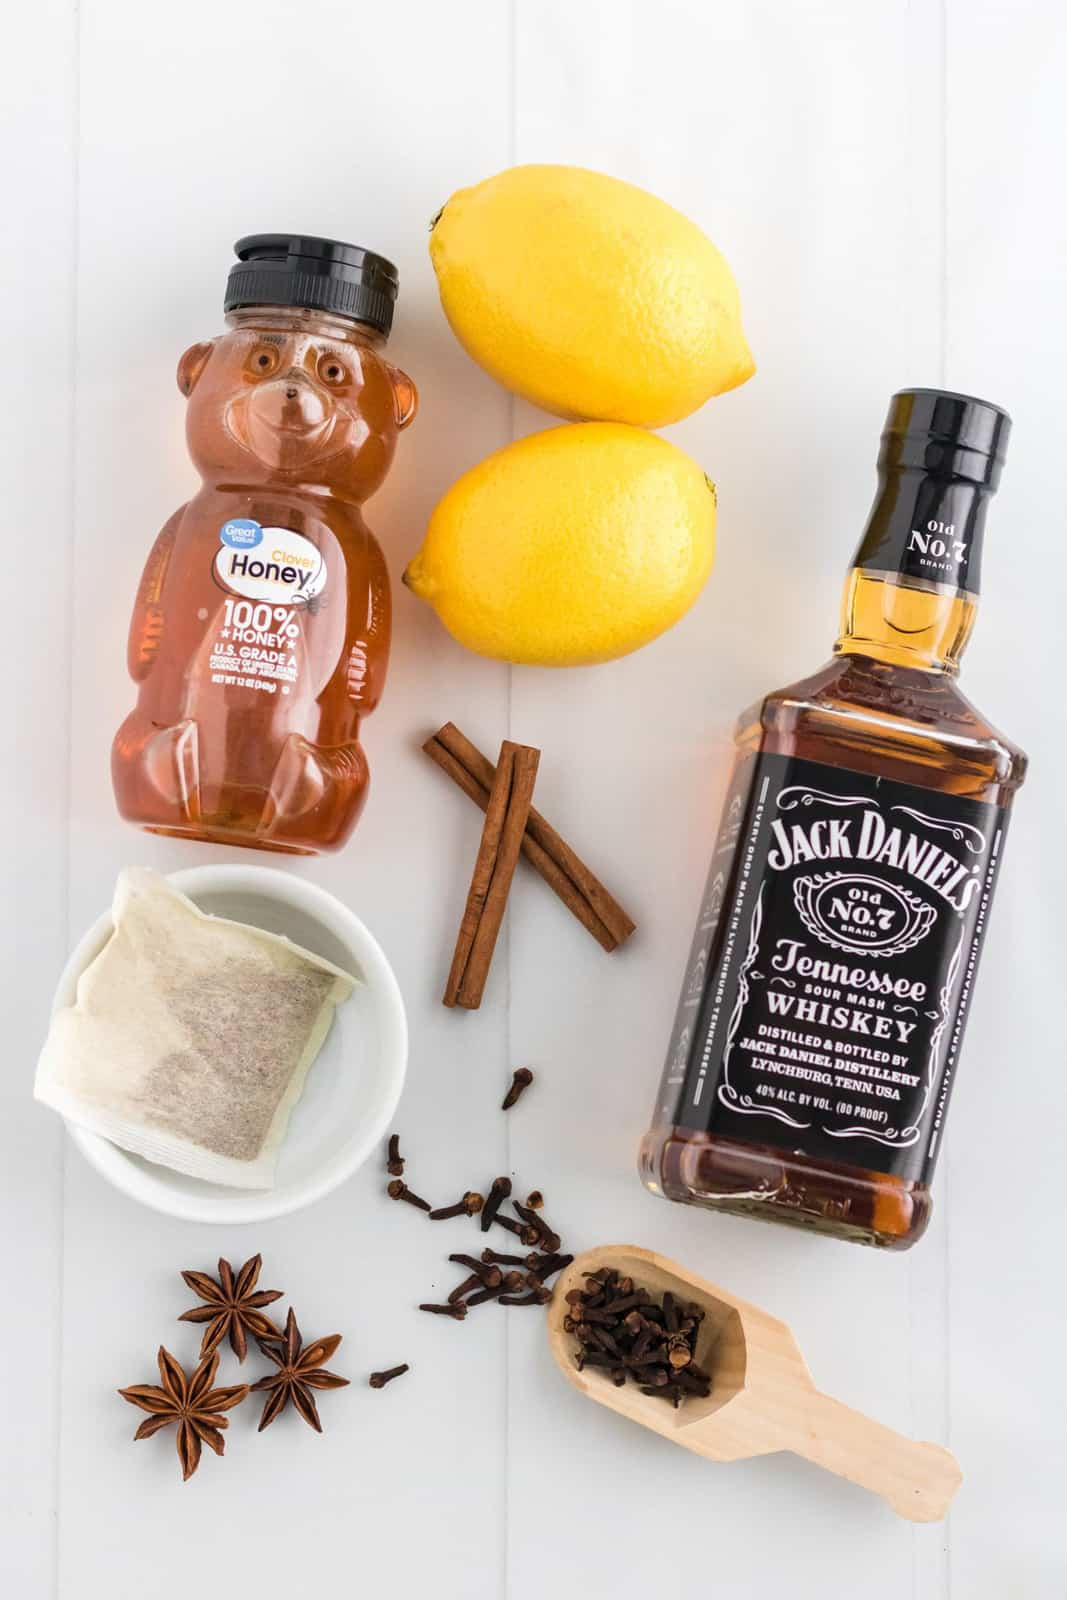 Ingredients neded to make a Hot Toddy.